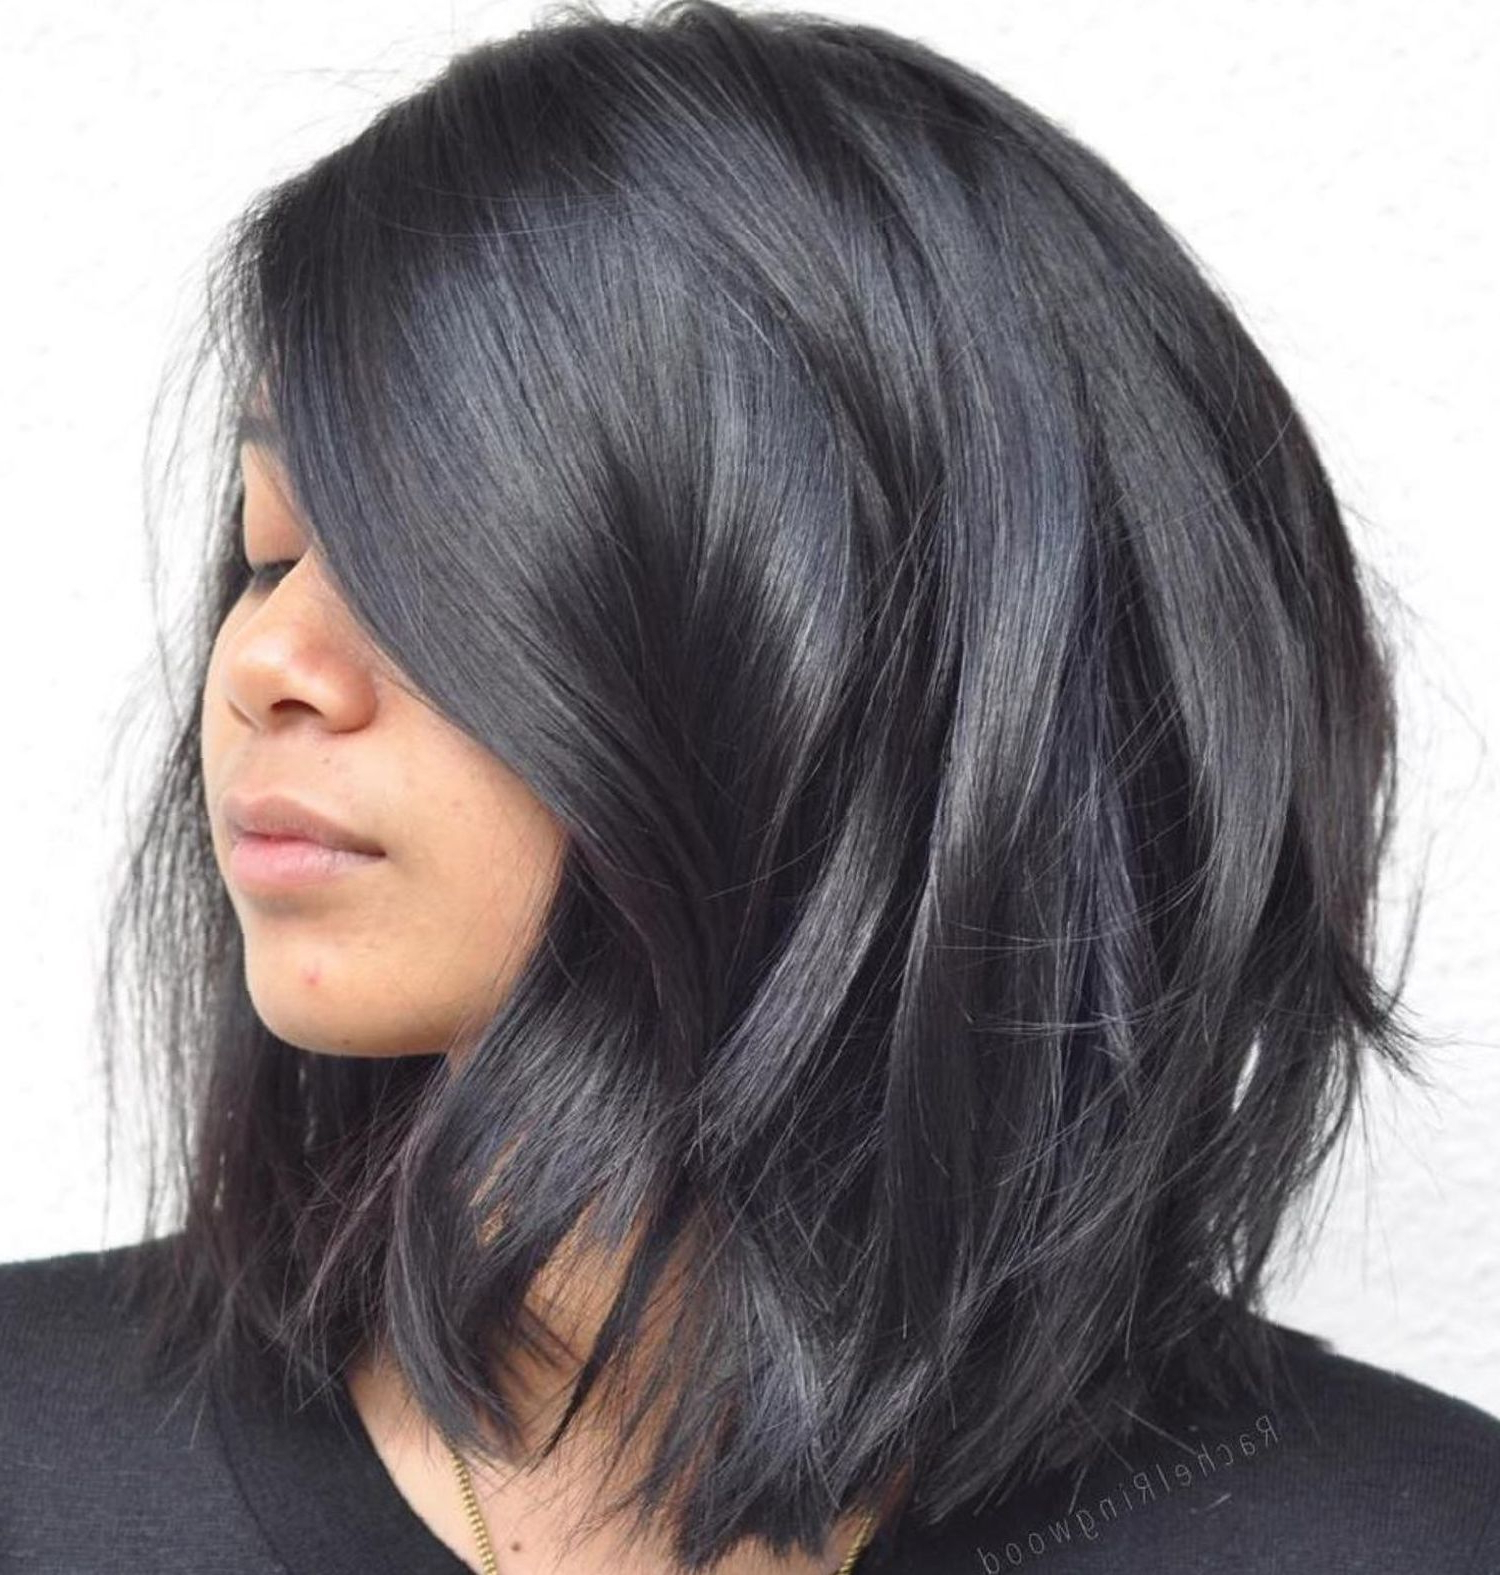 Haircuts Intended For Most Recently Released Black Hairstyles Medium Haircuts (View 8 of 20)